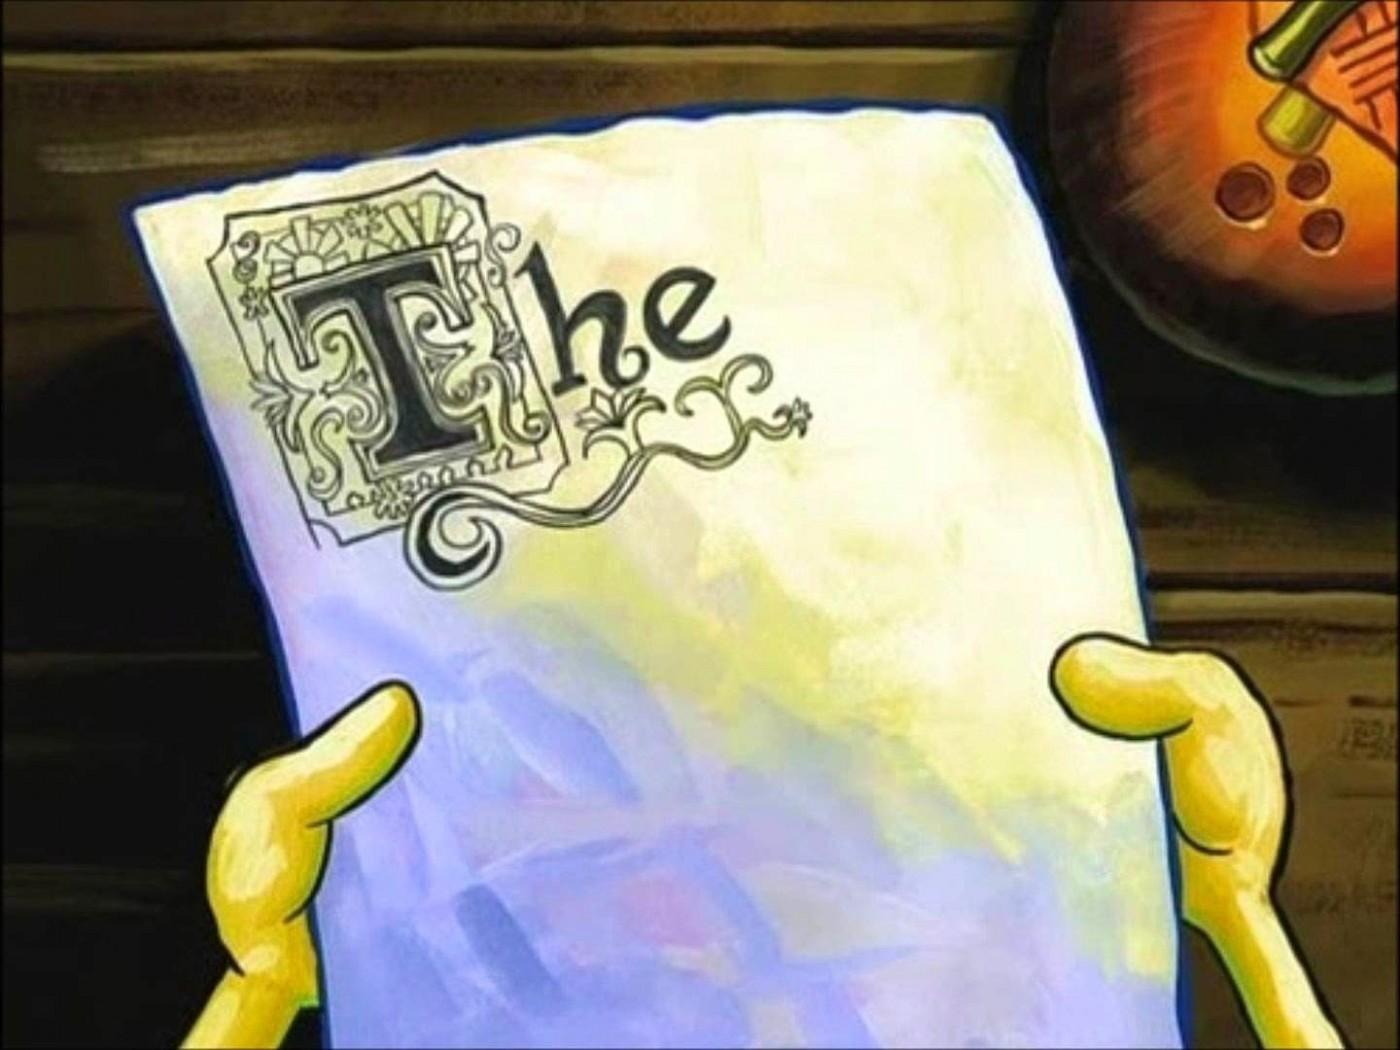 008 Essay Example Surprising Spongebob Deleted Scene Writing Meme House 1400